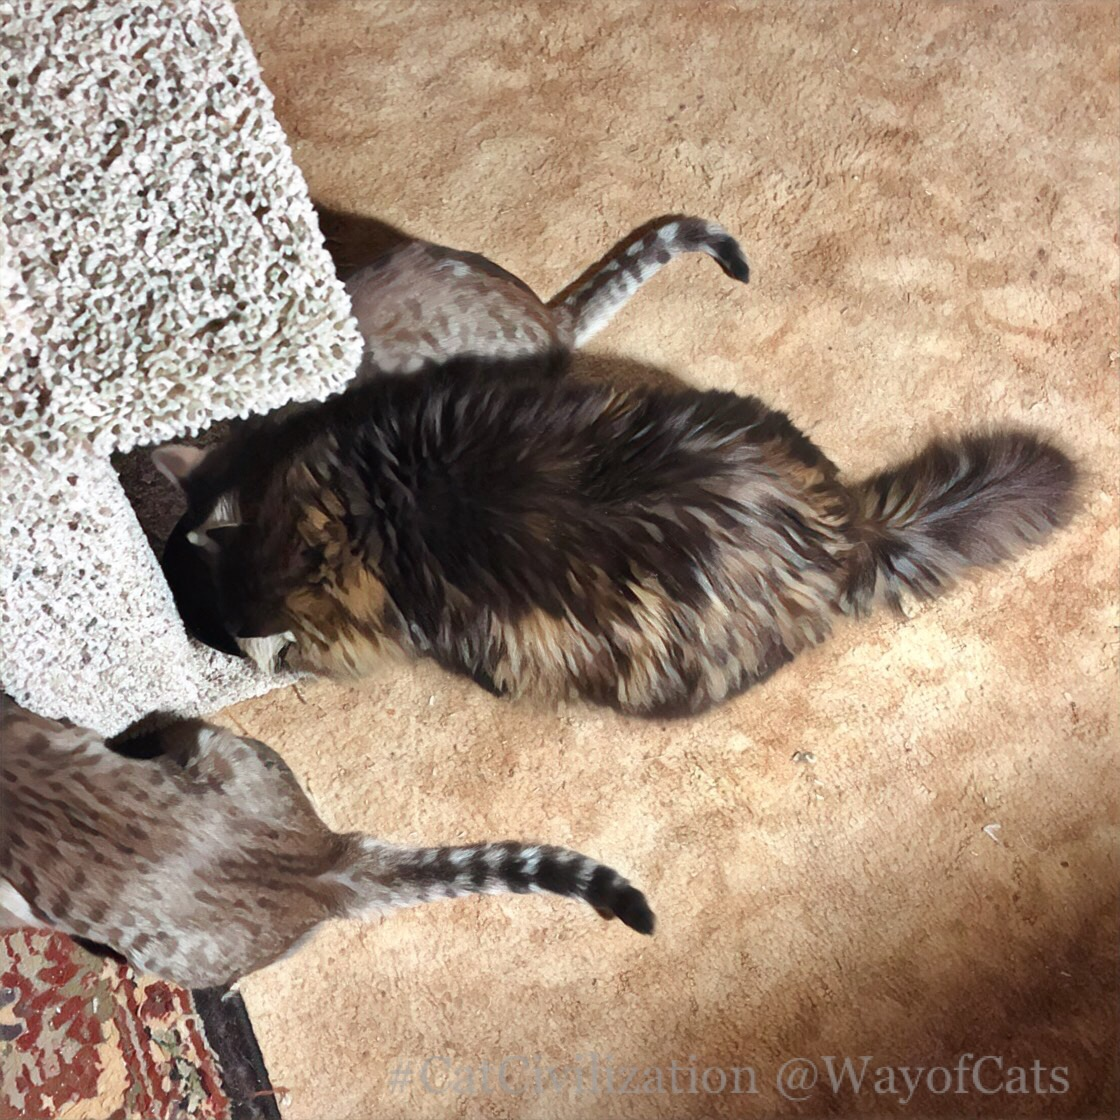 What Are The Cat Growth Stages The Way Of Cats